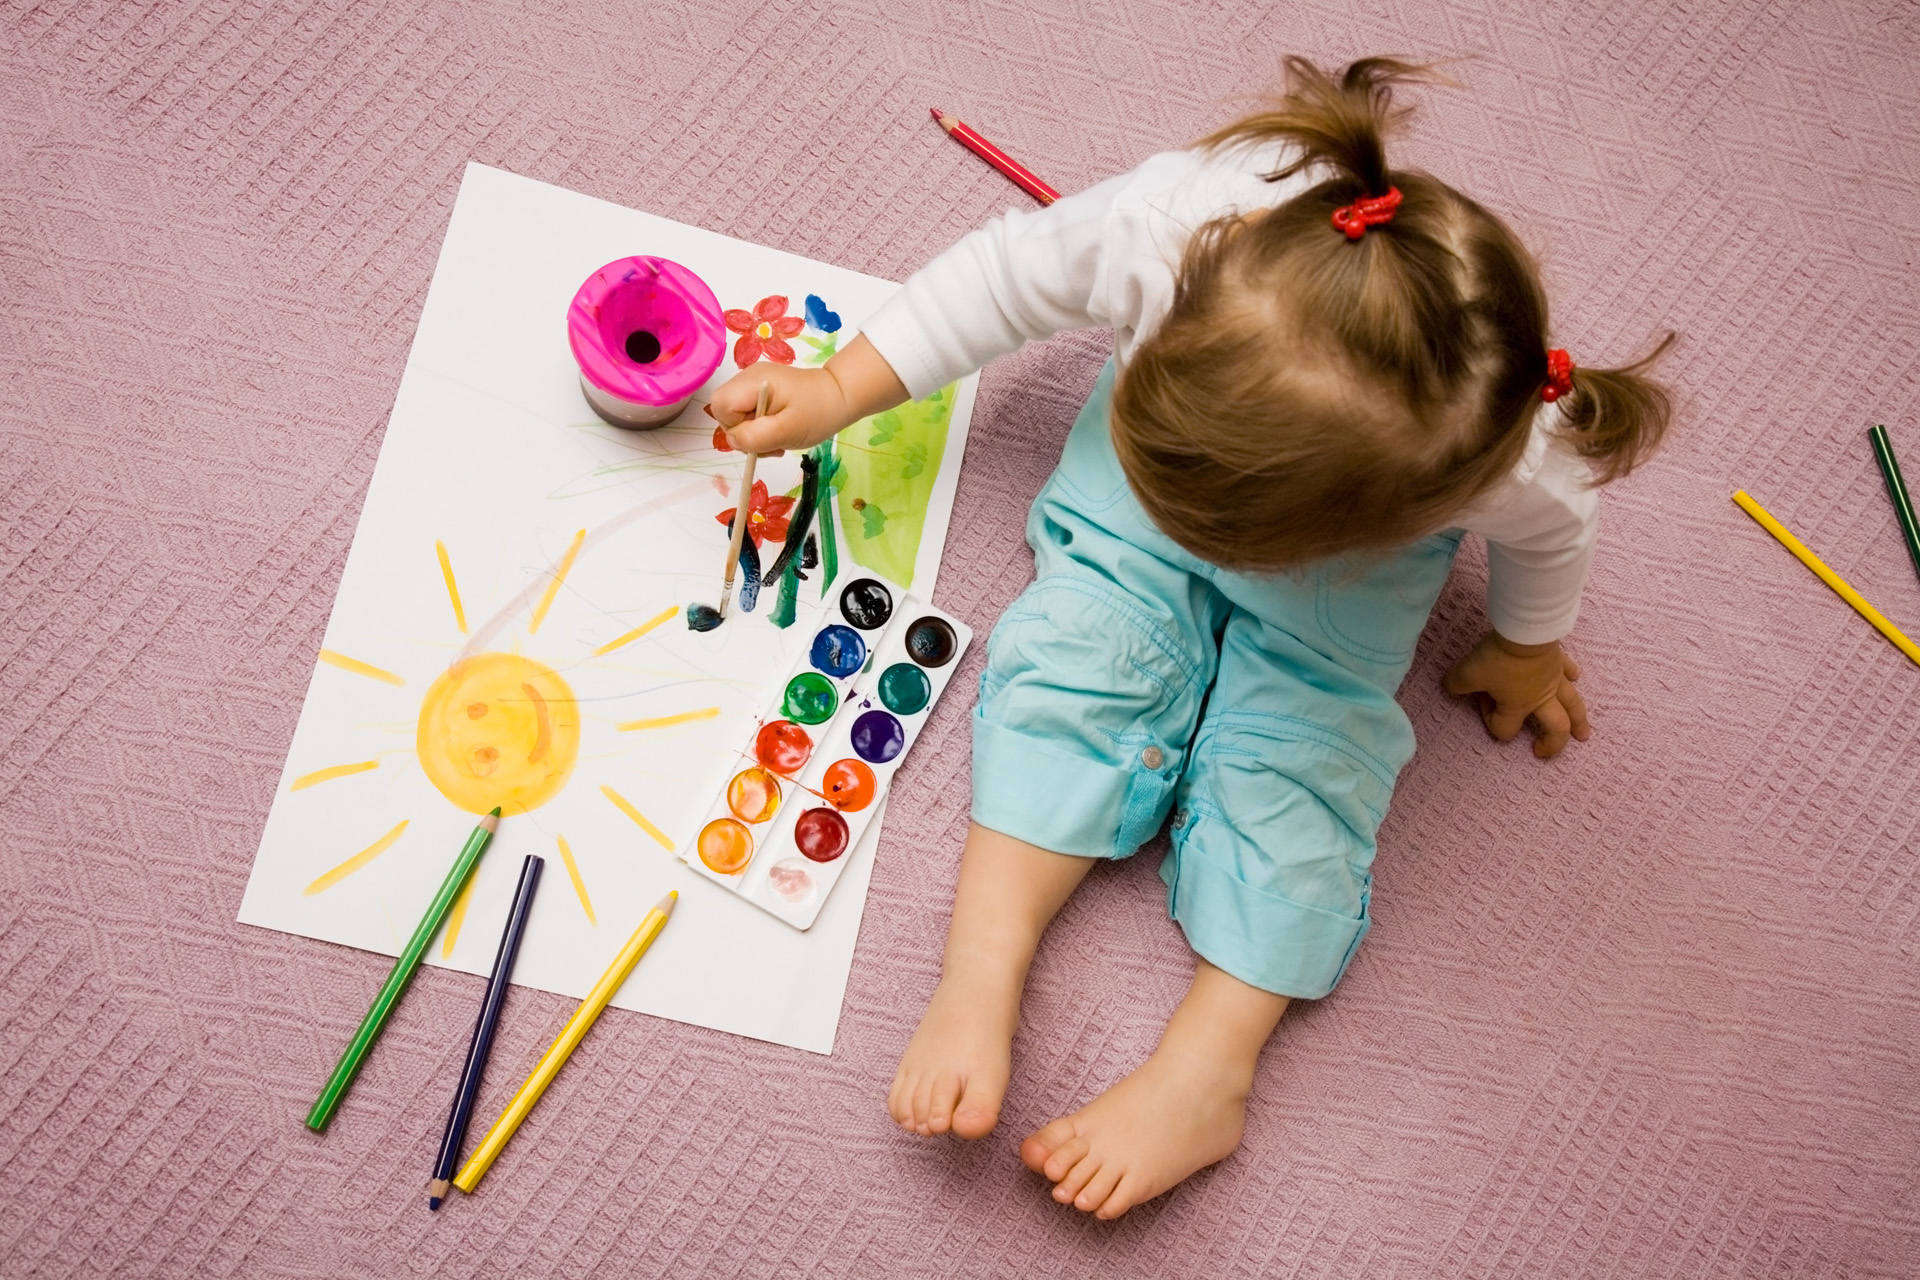 The small beautiful girl paints on a paper